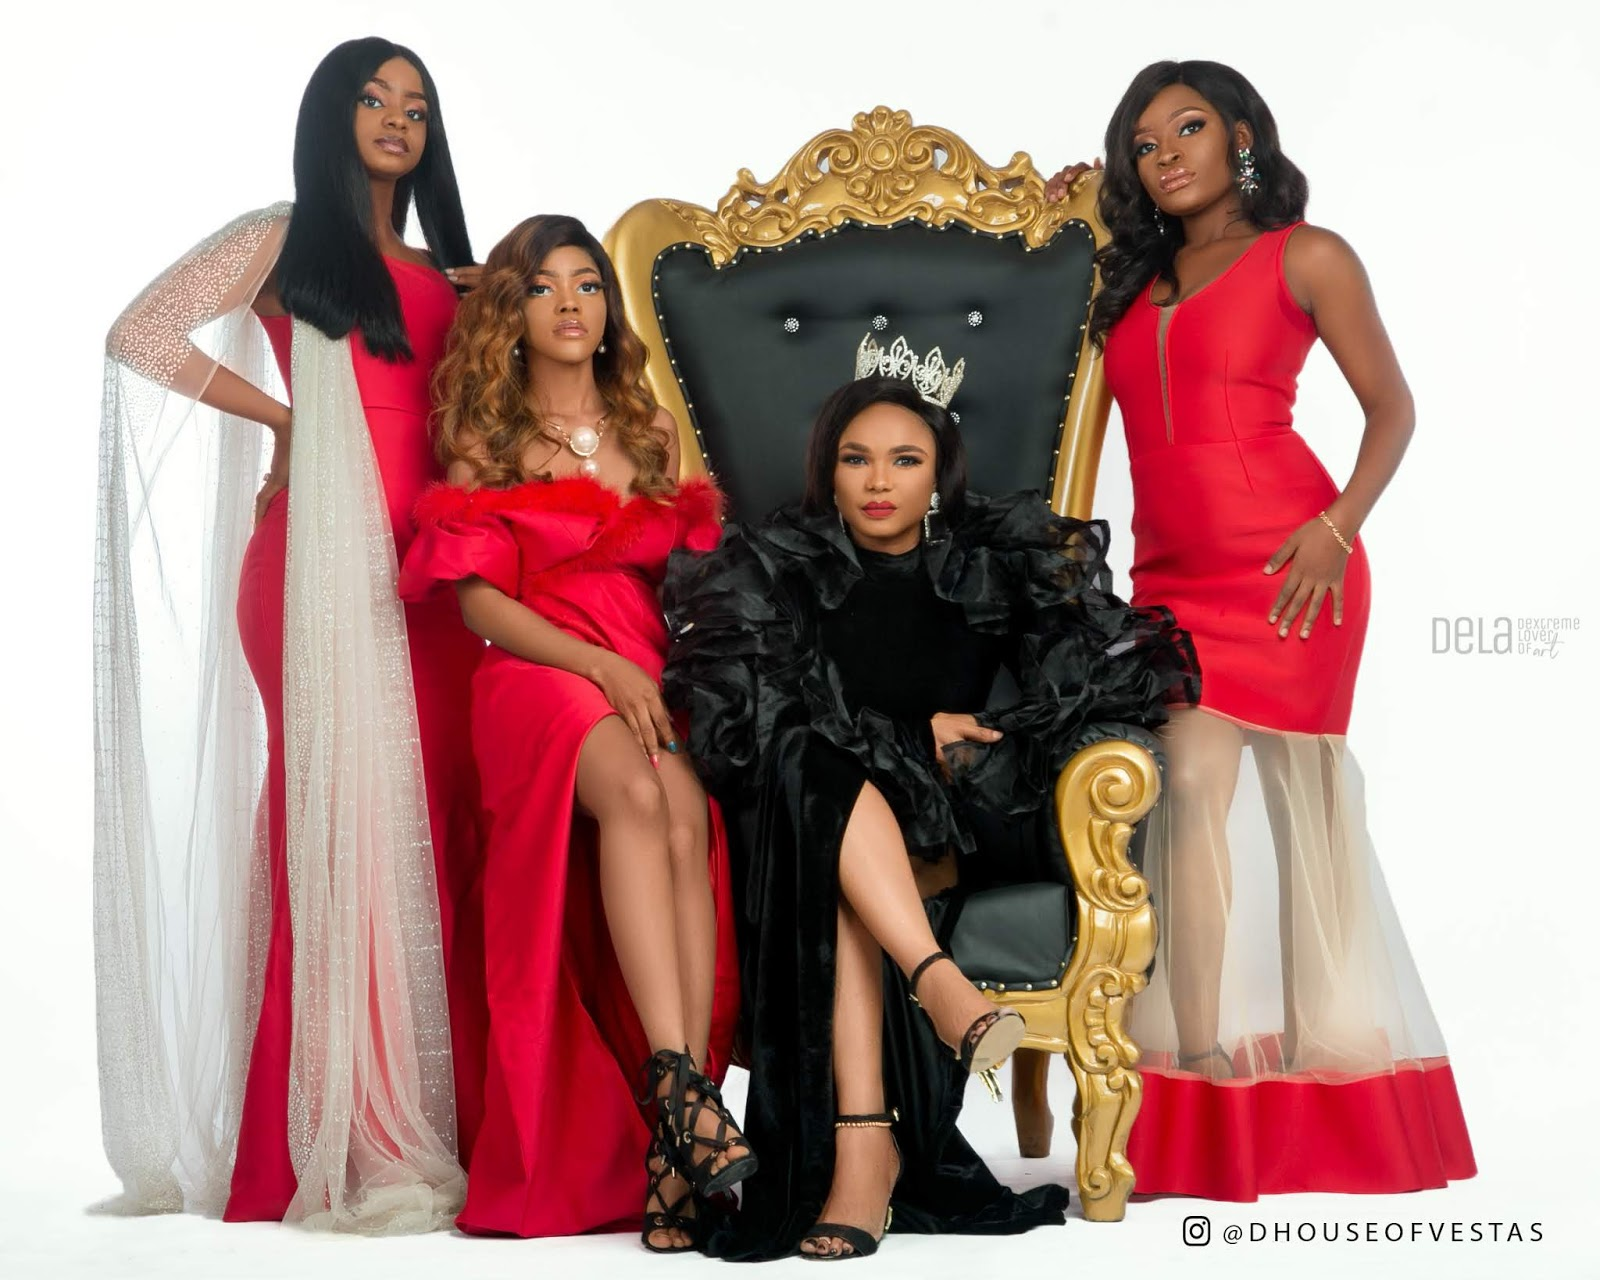 House Of Vestas THE LIONESS AND HER CUBS Featuring Actress Iyabo Ojo Priscilla Ojo Miss Lucy Thacutegemini3